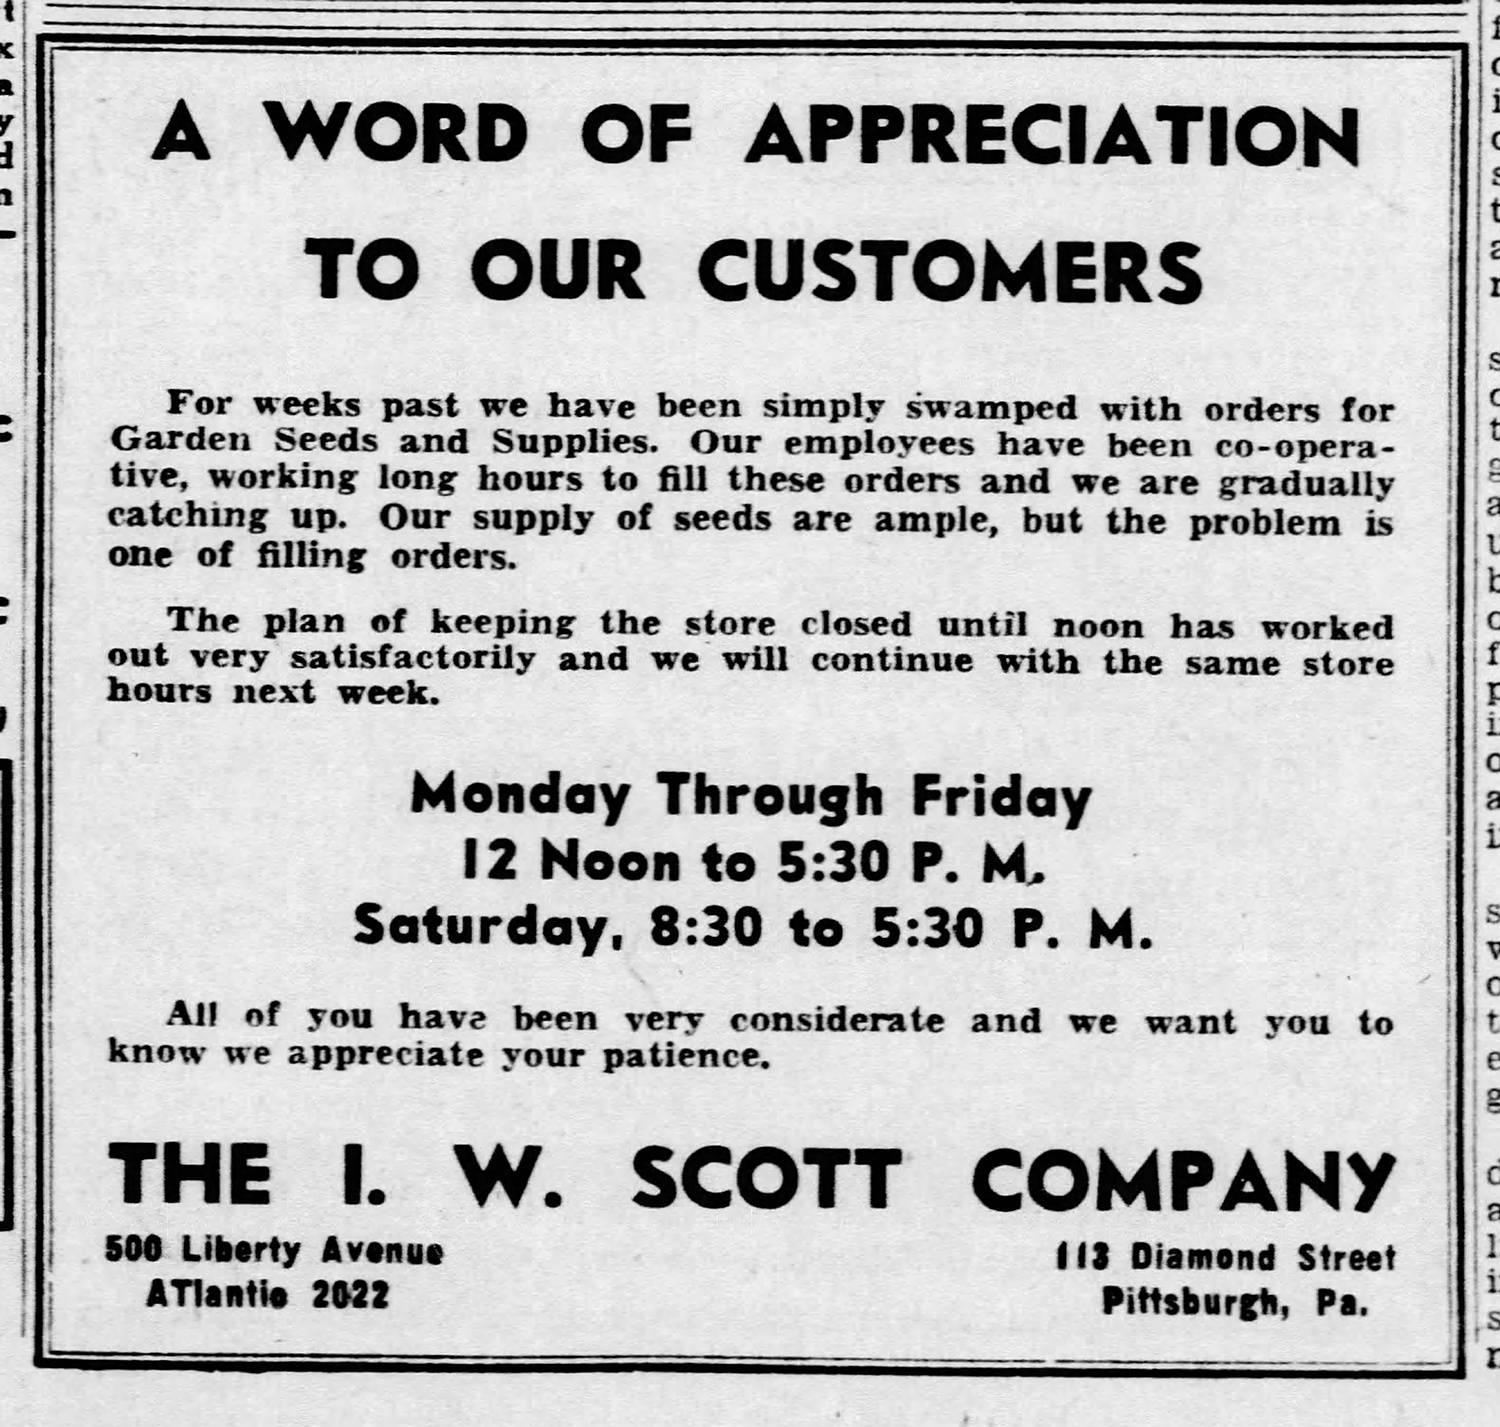 A Word of Appreciation to our Customers, advertisement, The I. W. Scott Company, Pittsburgh, April 1943.